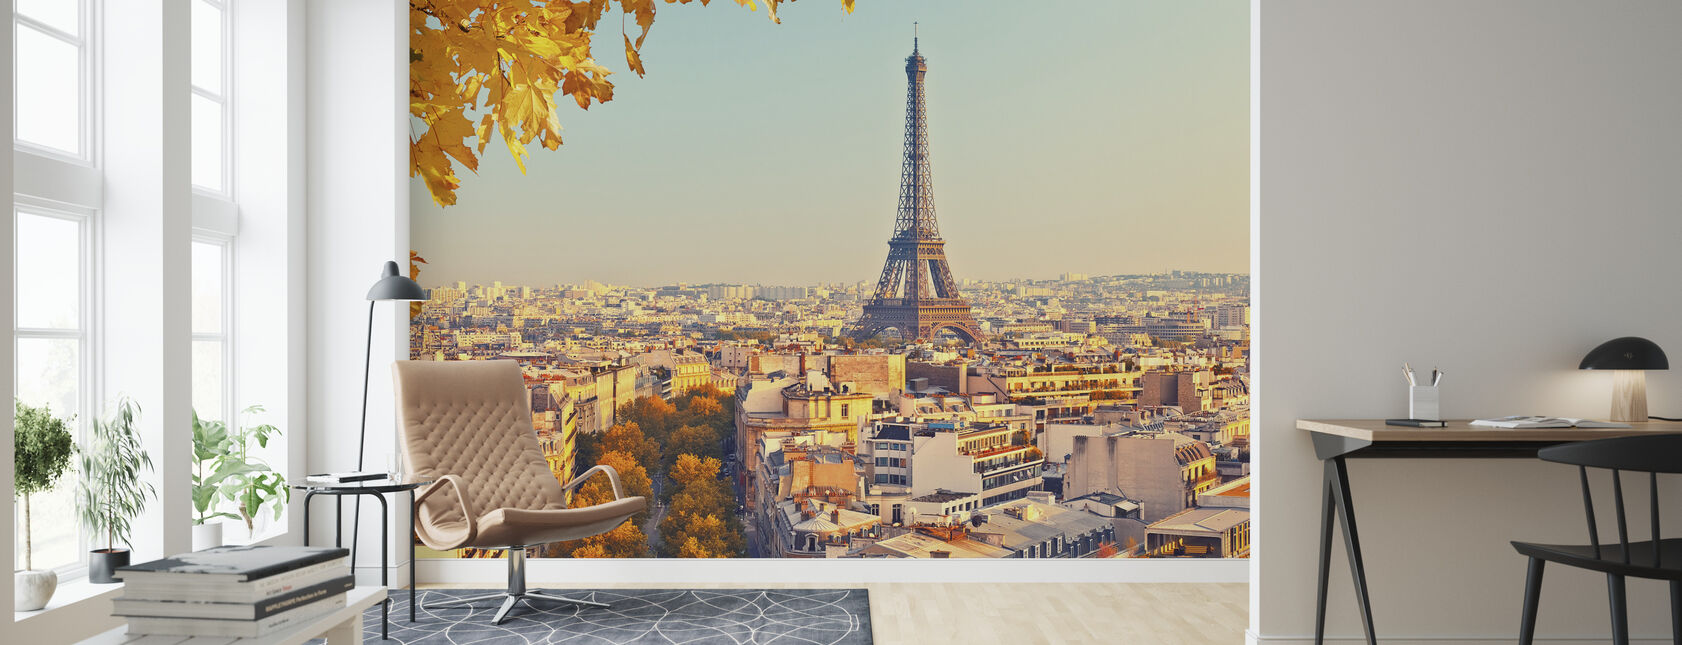 Eiffel Tower Autumn View - Wallpaper - Living Room